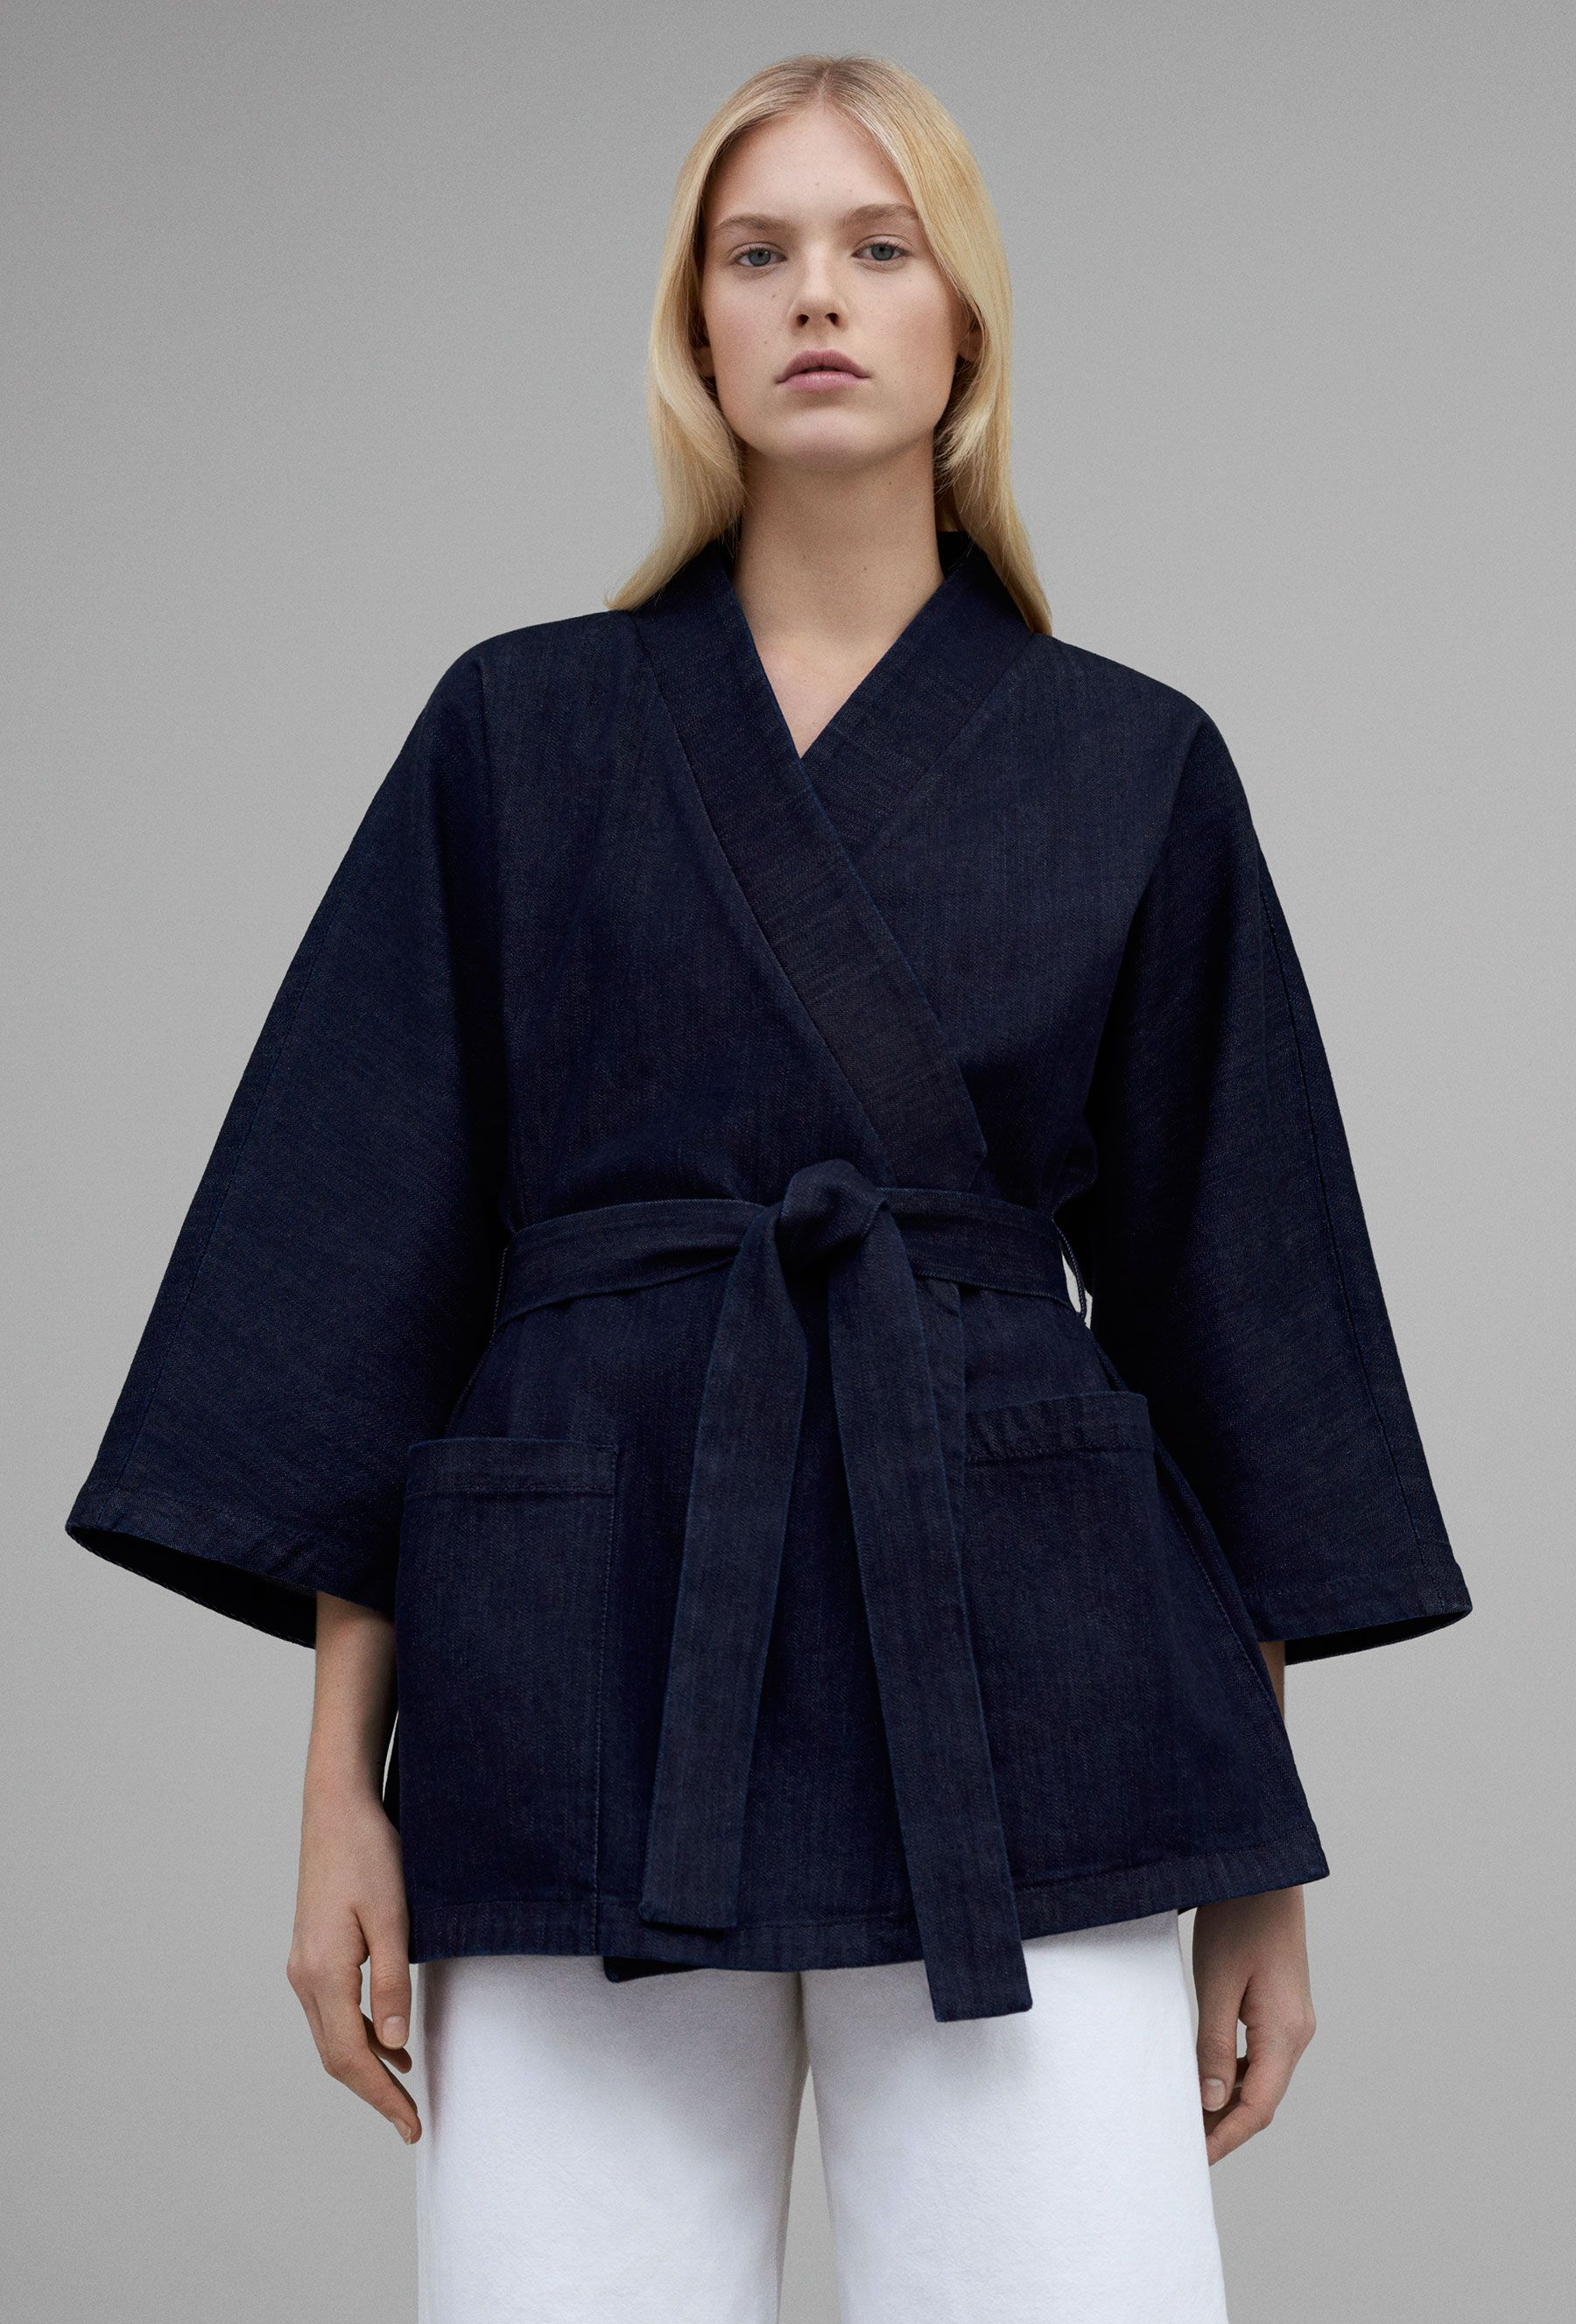 COS belted denim kimono style jacket curated by ajaedmond